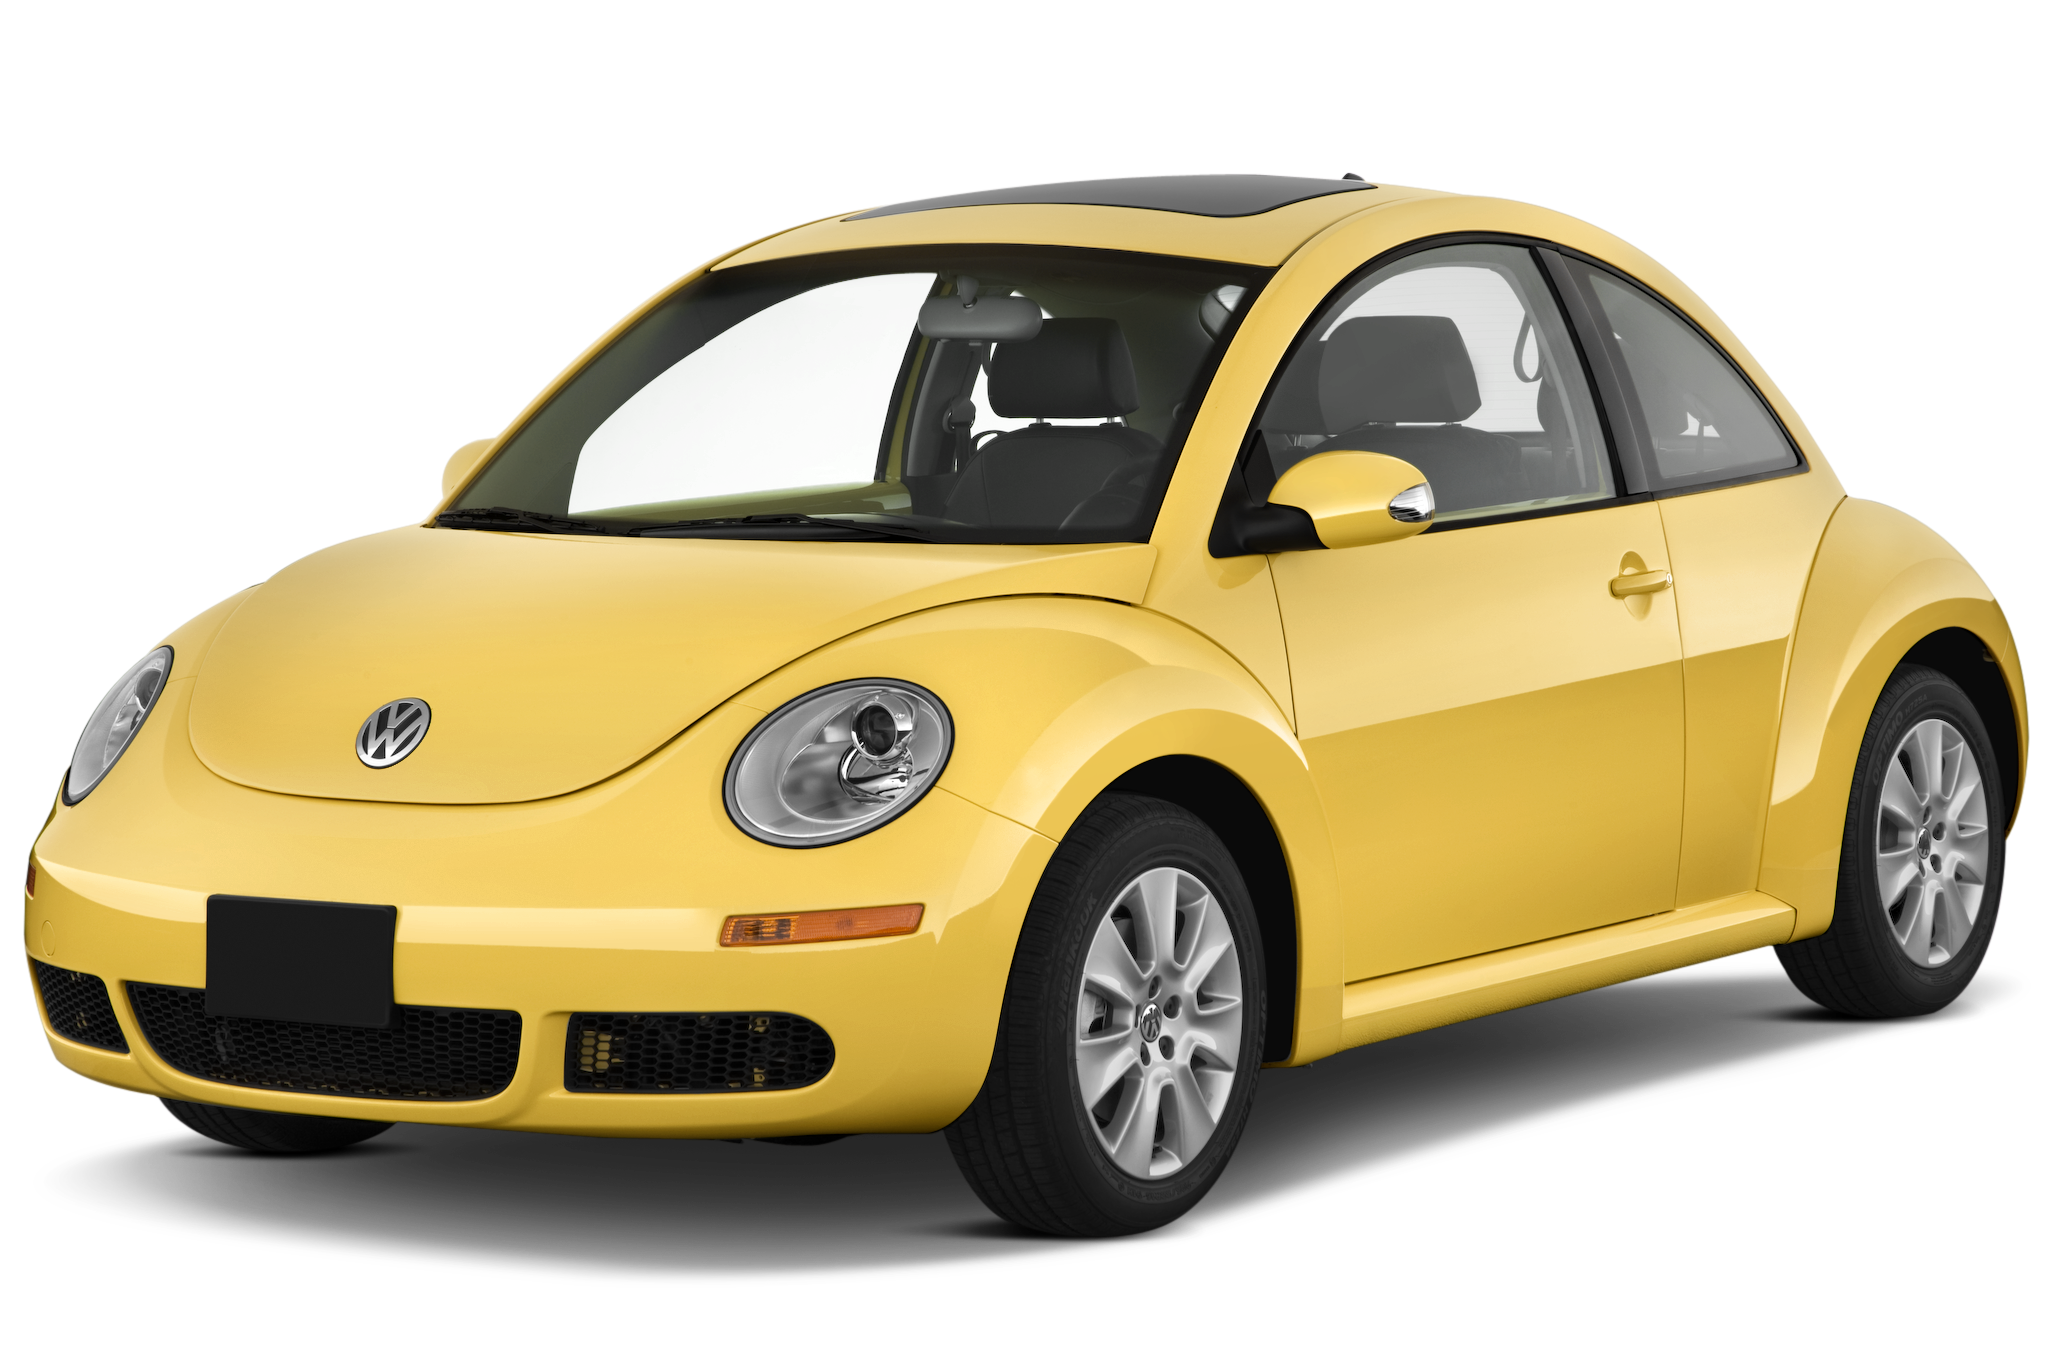 feature flick jay leno compares 2012 volkswagen beetle to original 1938 volkswagen beetle. Black Bedroom Furniture Sets. Home Design Ideas